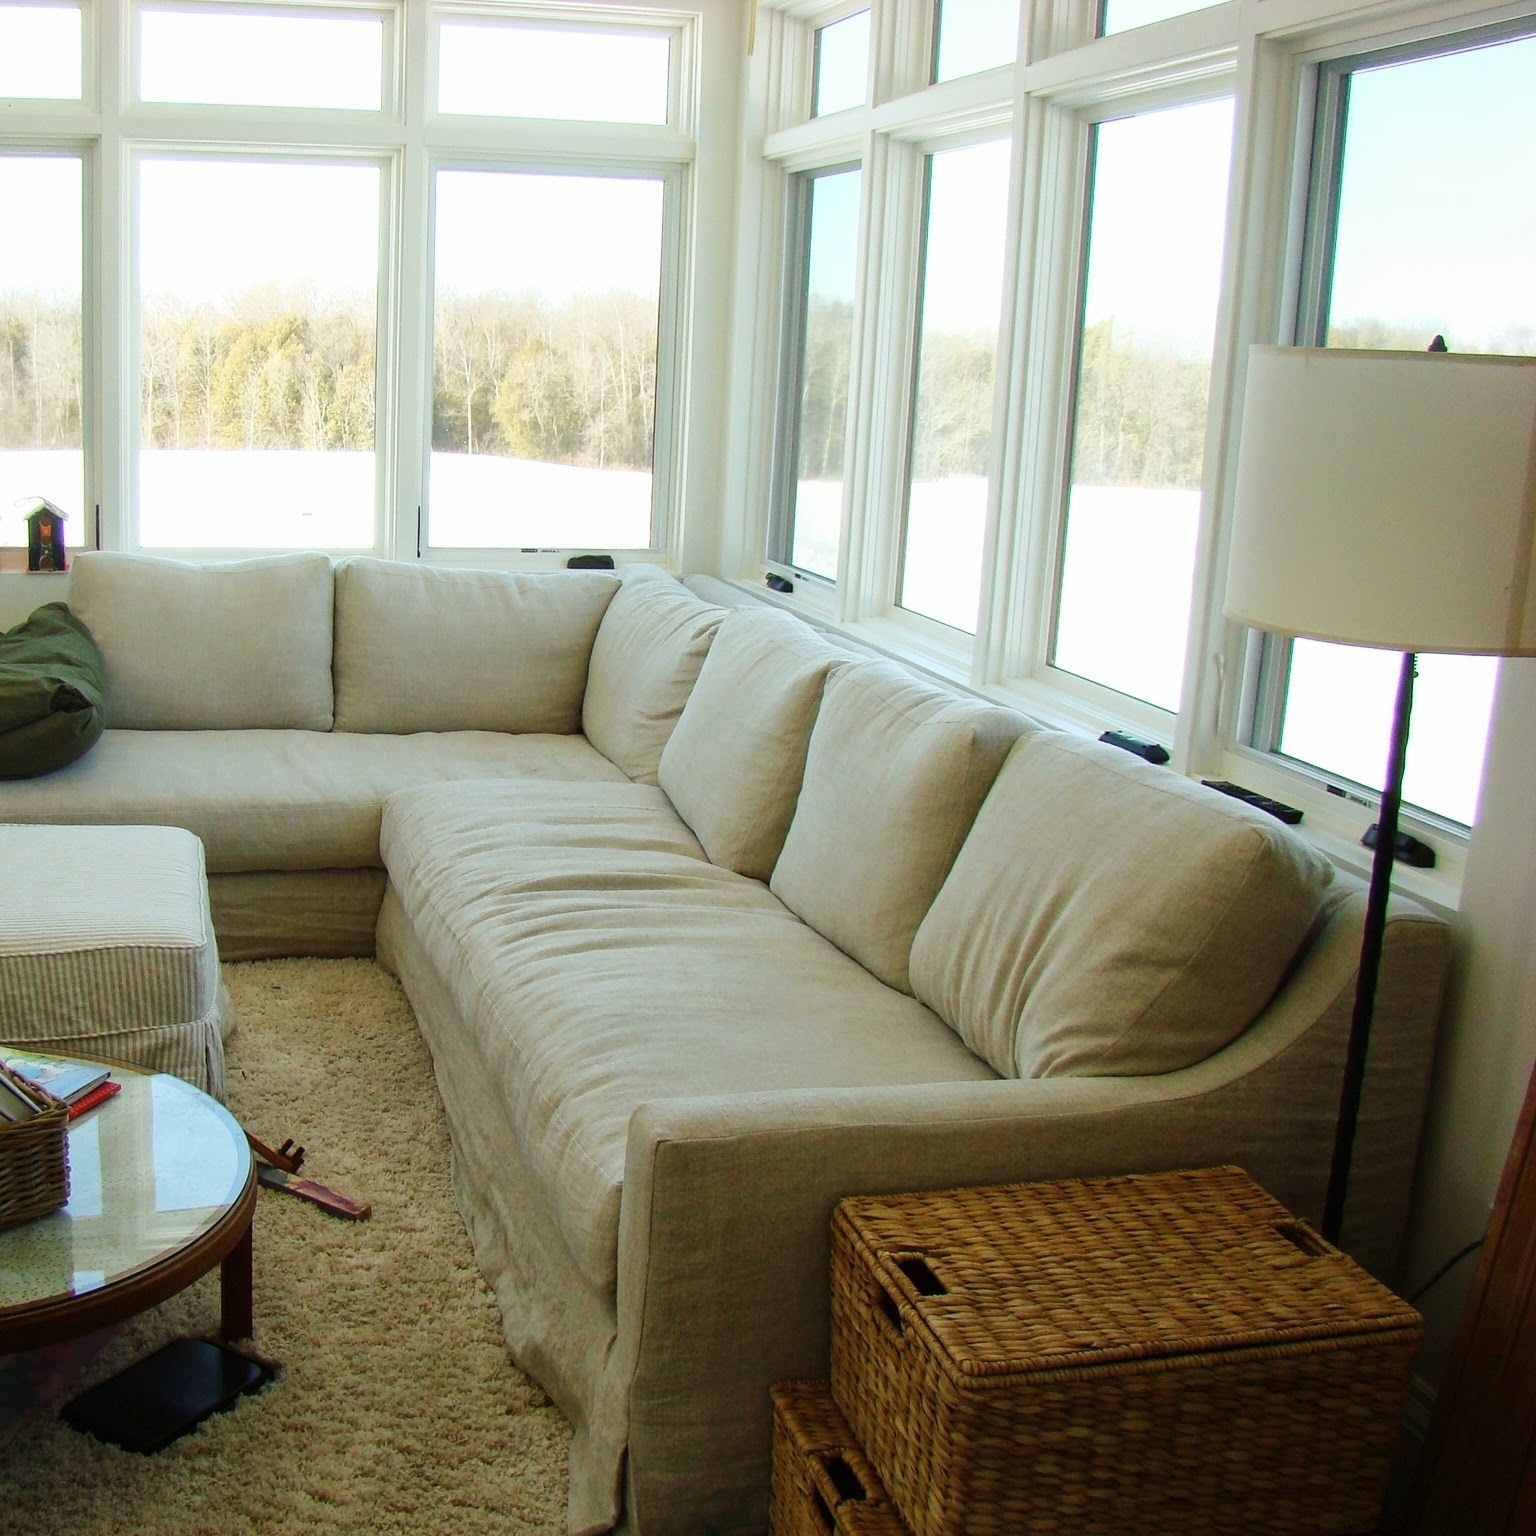 Restoration Hardware Sectional Sofas With Regard To Popular Building Walnut Farm: Belgian Linen Slipcovered Furniture (View 2 of 15)